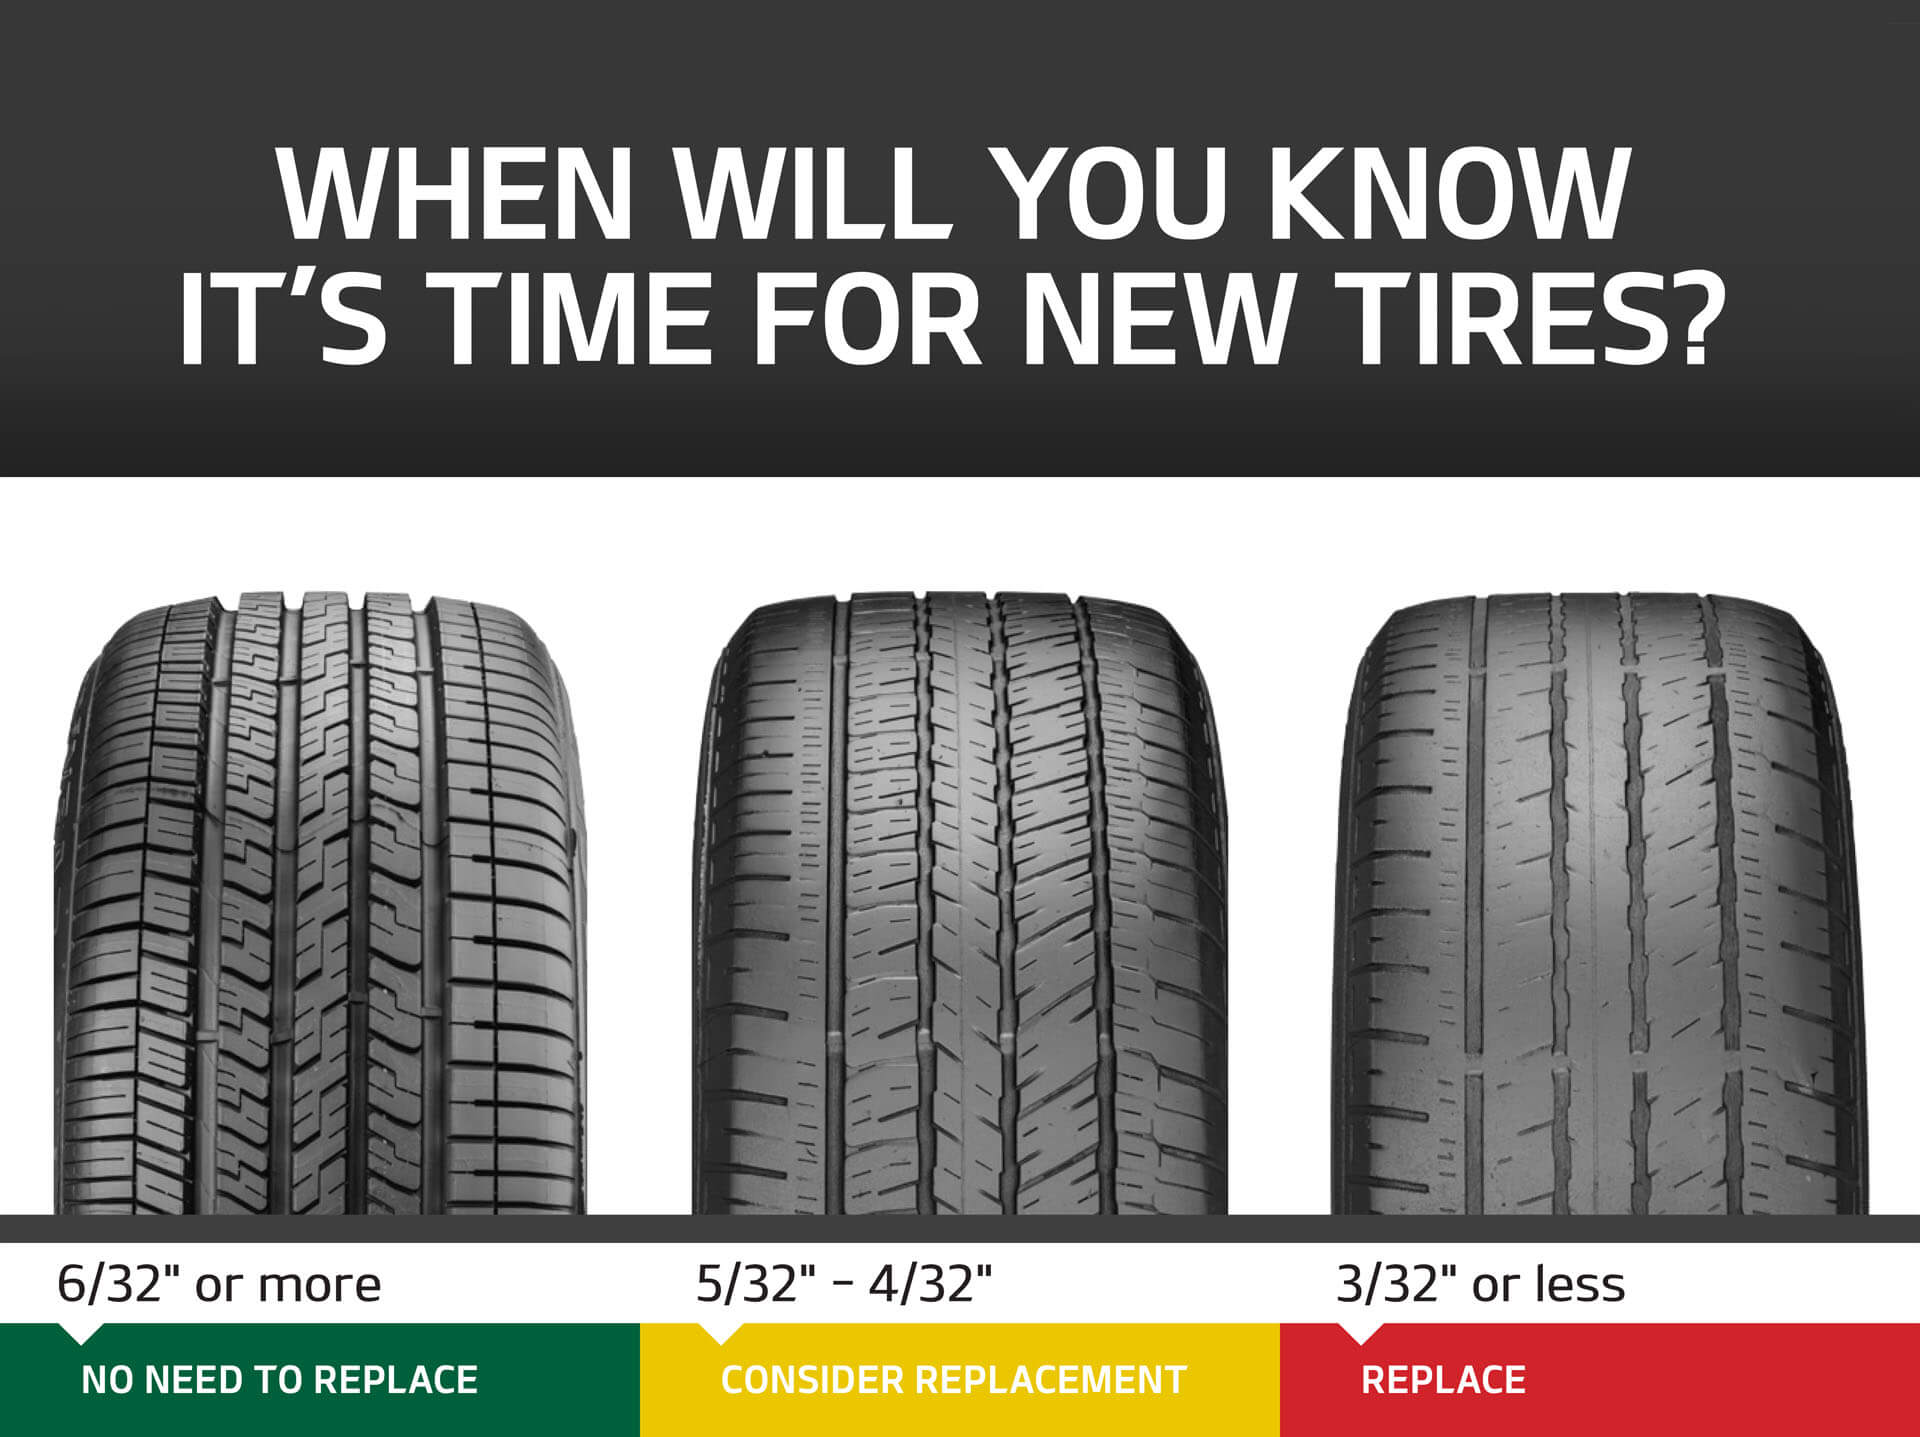 When will you know it's time for new tires? 6/32 inches of tread, no need to replace. 5/32 to 4/32 inches of tread, consider replacement. 3/32 inches of tread or less, it's time to replace the tires.